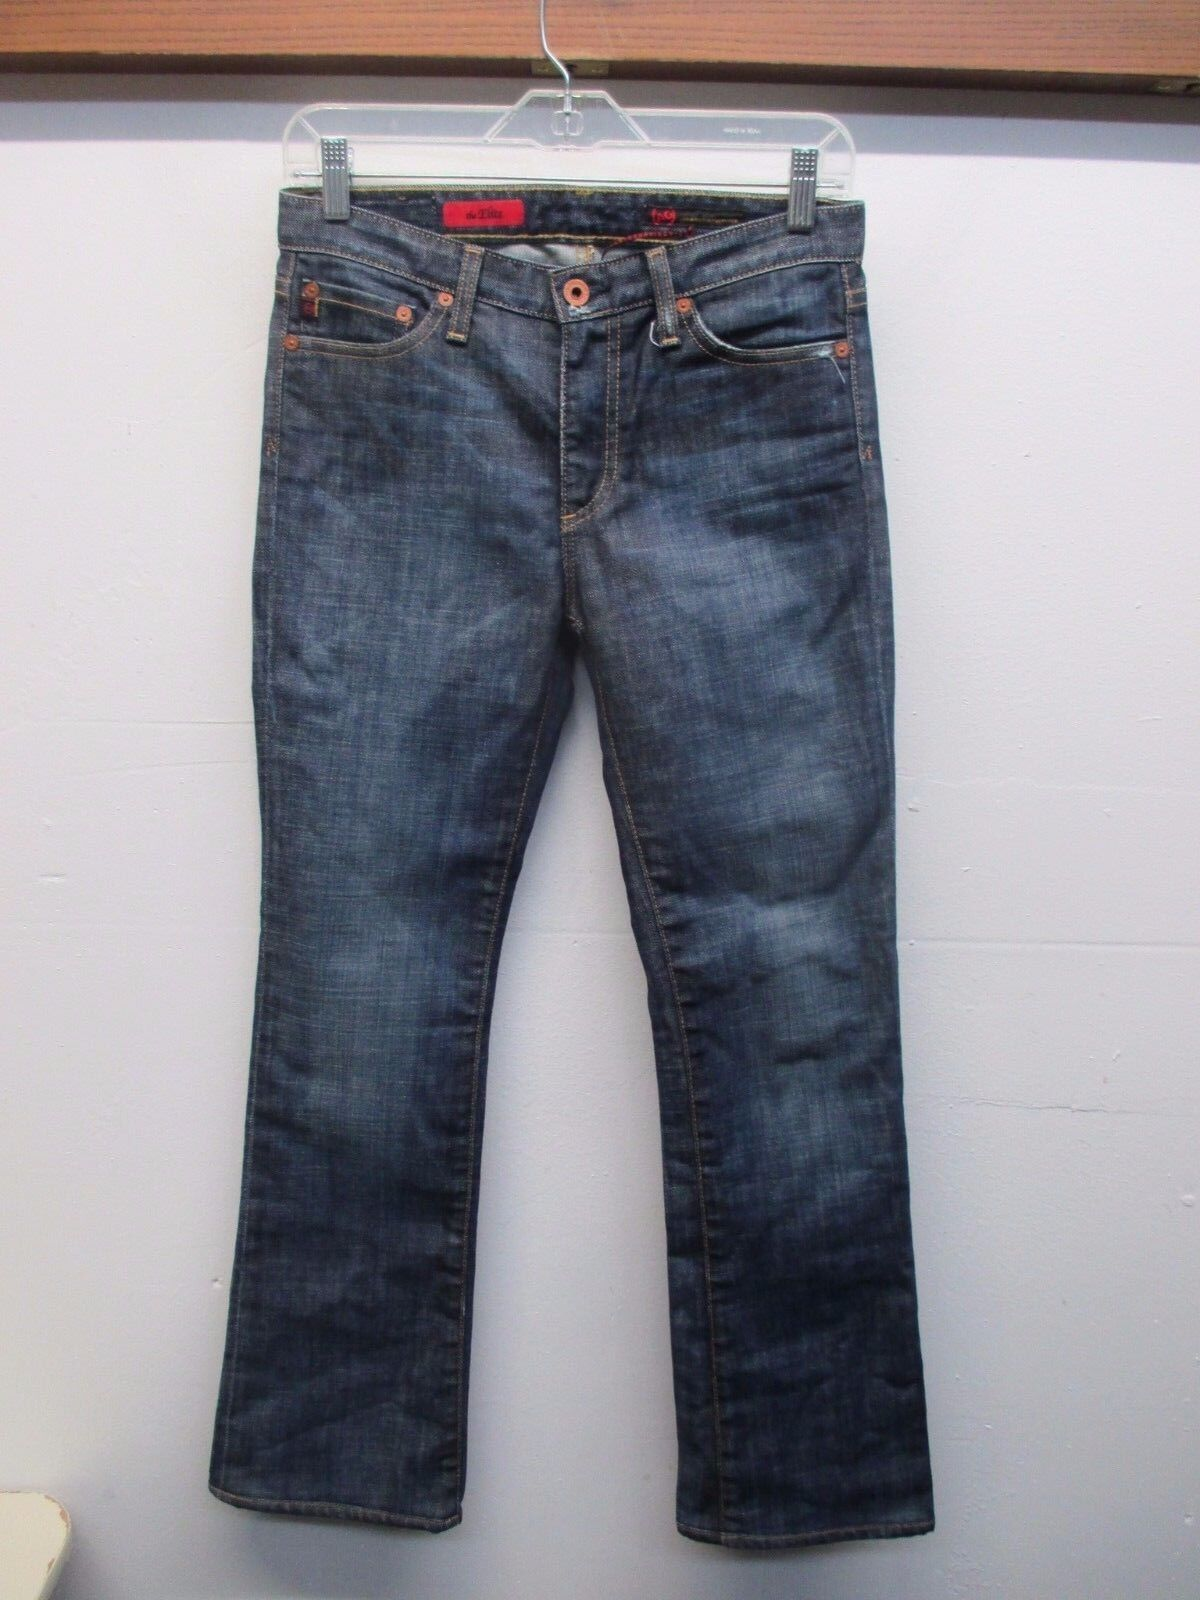 AG Adriano goldschmied The Elite Women's Dark bluee Jeans (Size  26) Made In USA